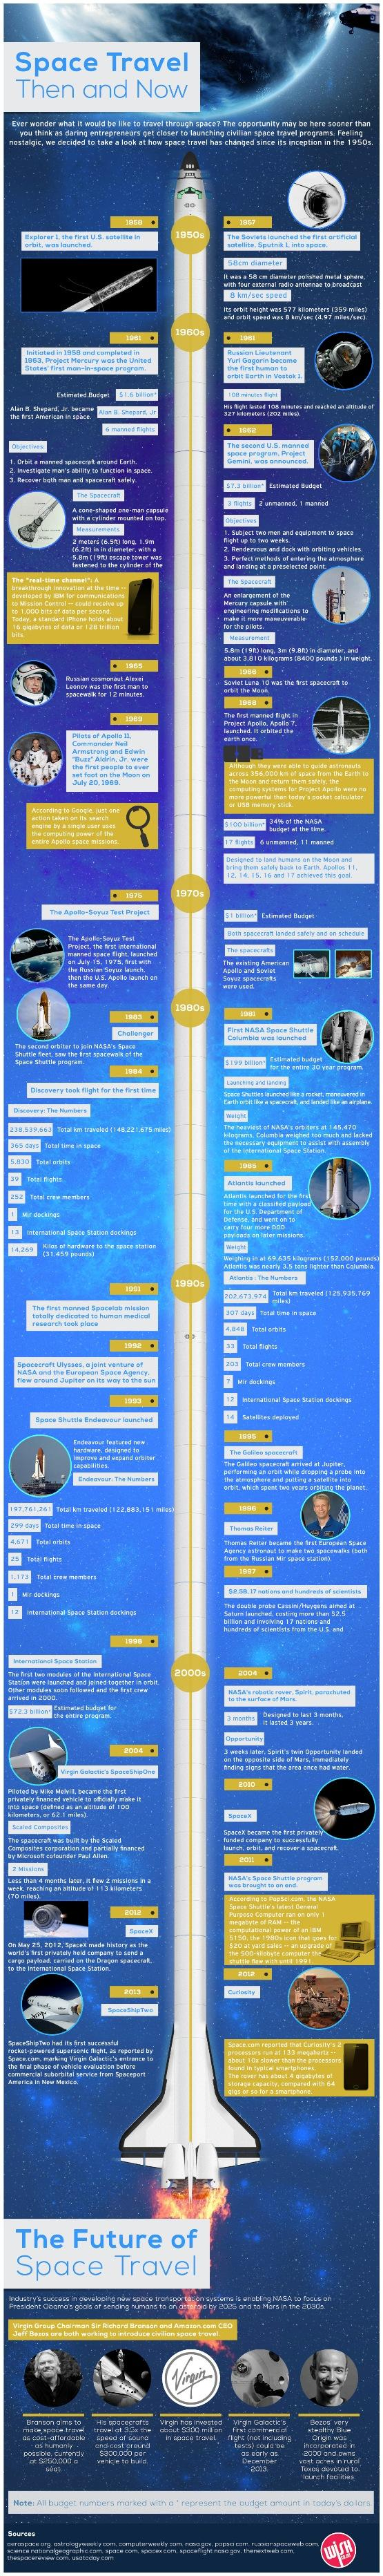 Space-Travel-infographic